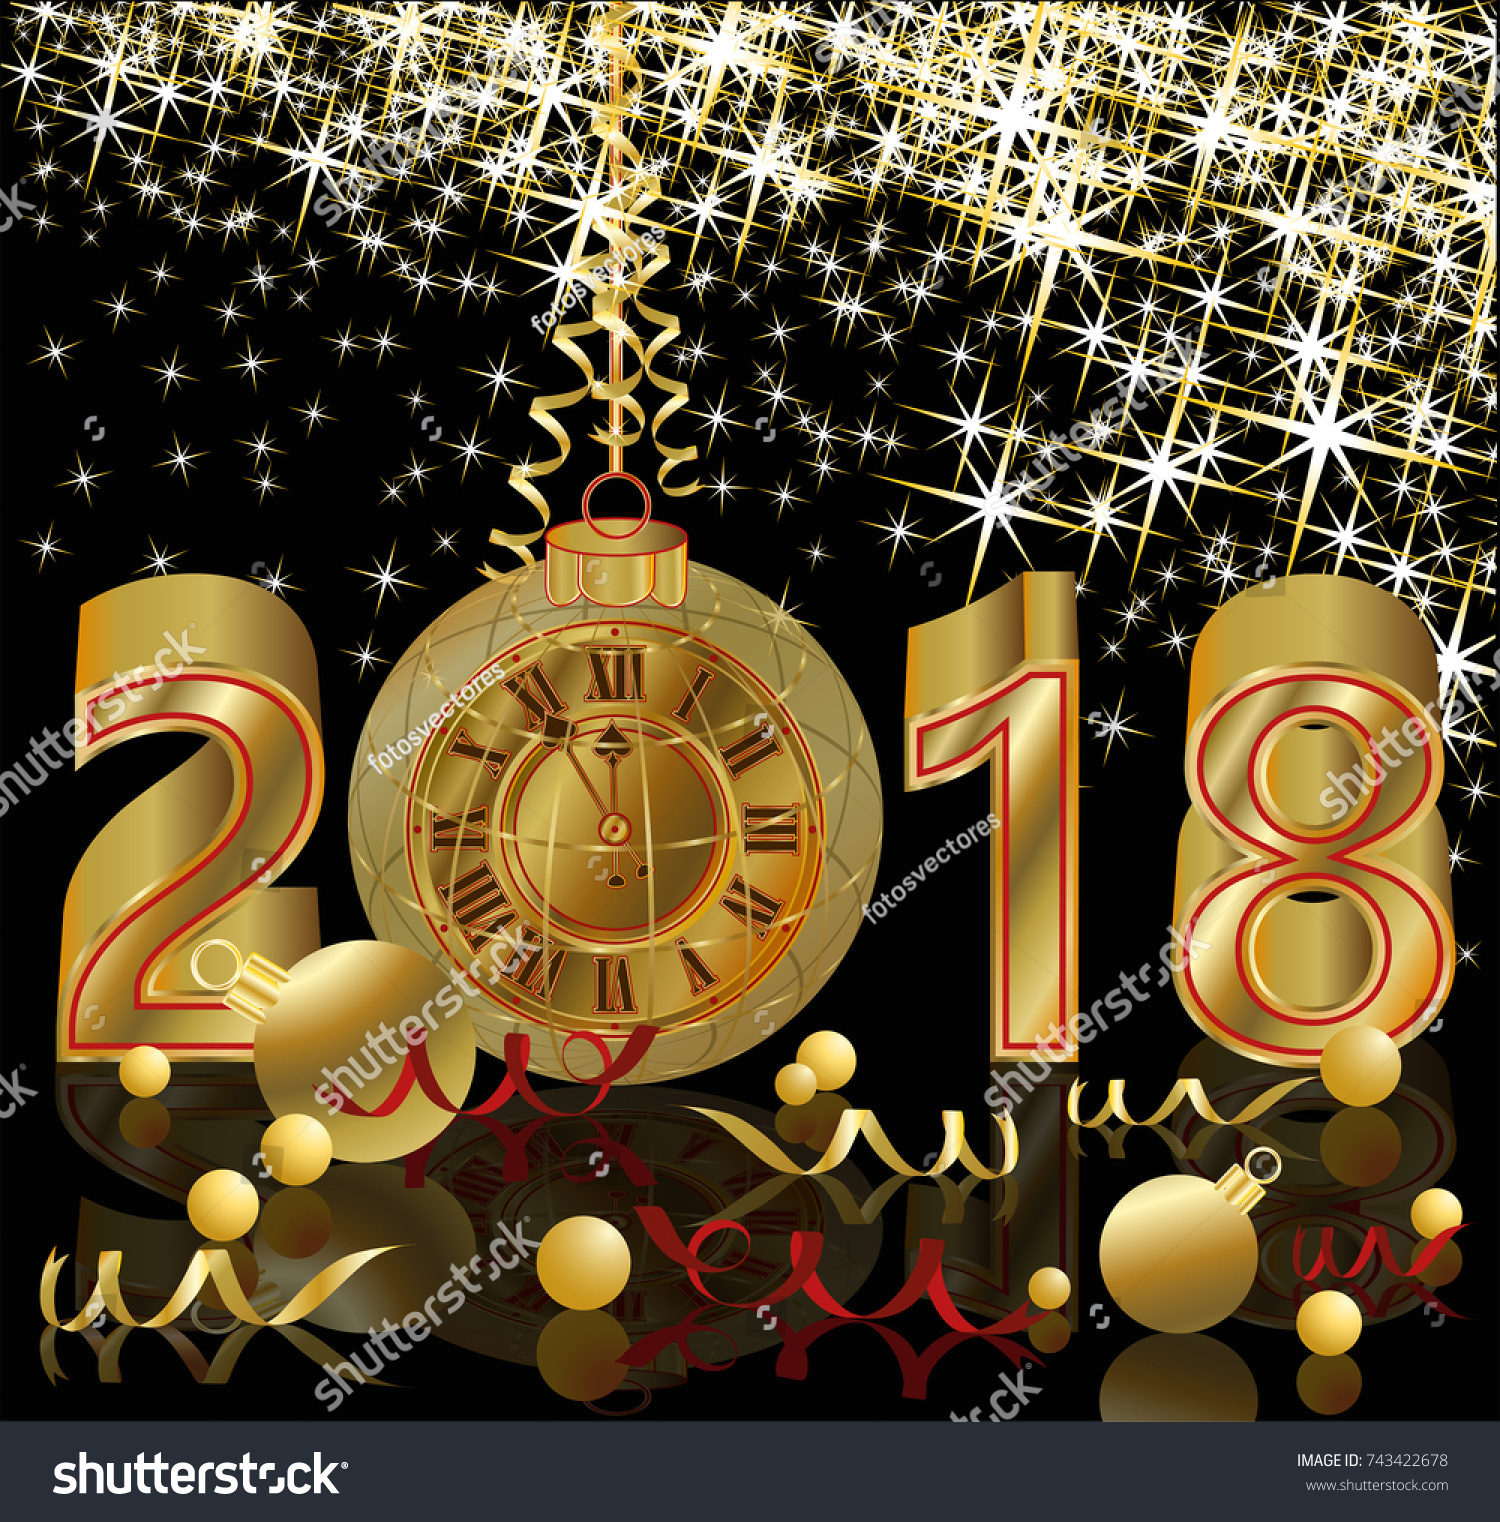 happy new 2018 year with golden clock wallpaper vector illustration